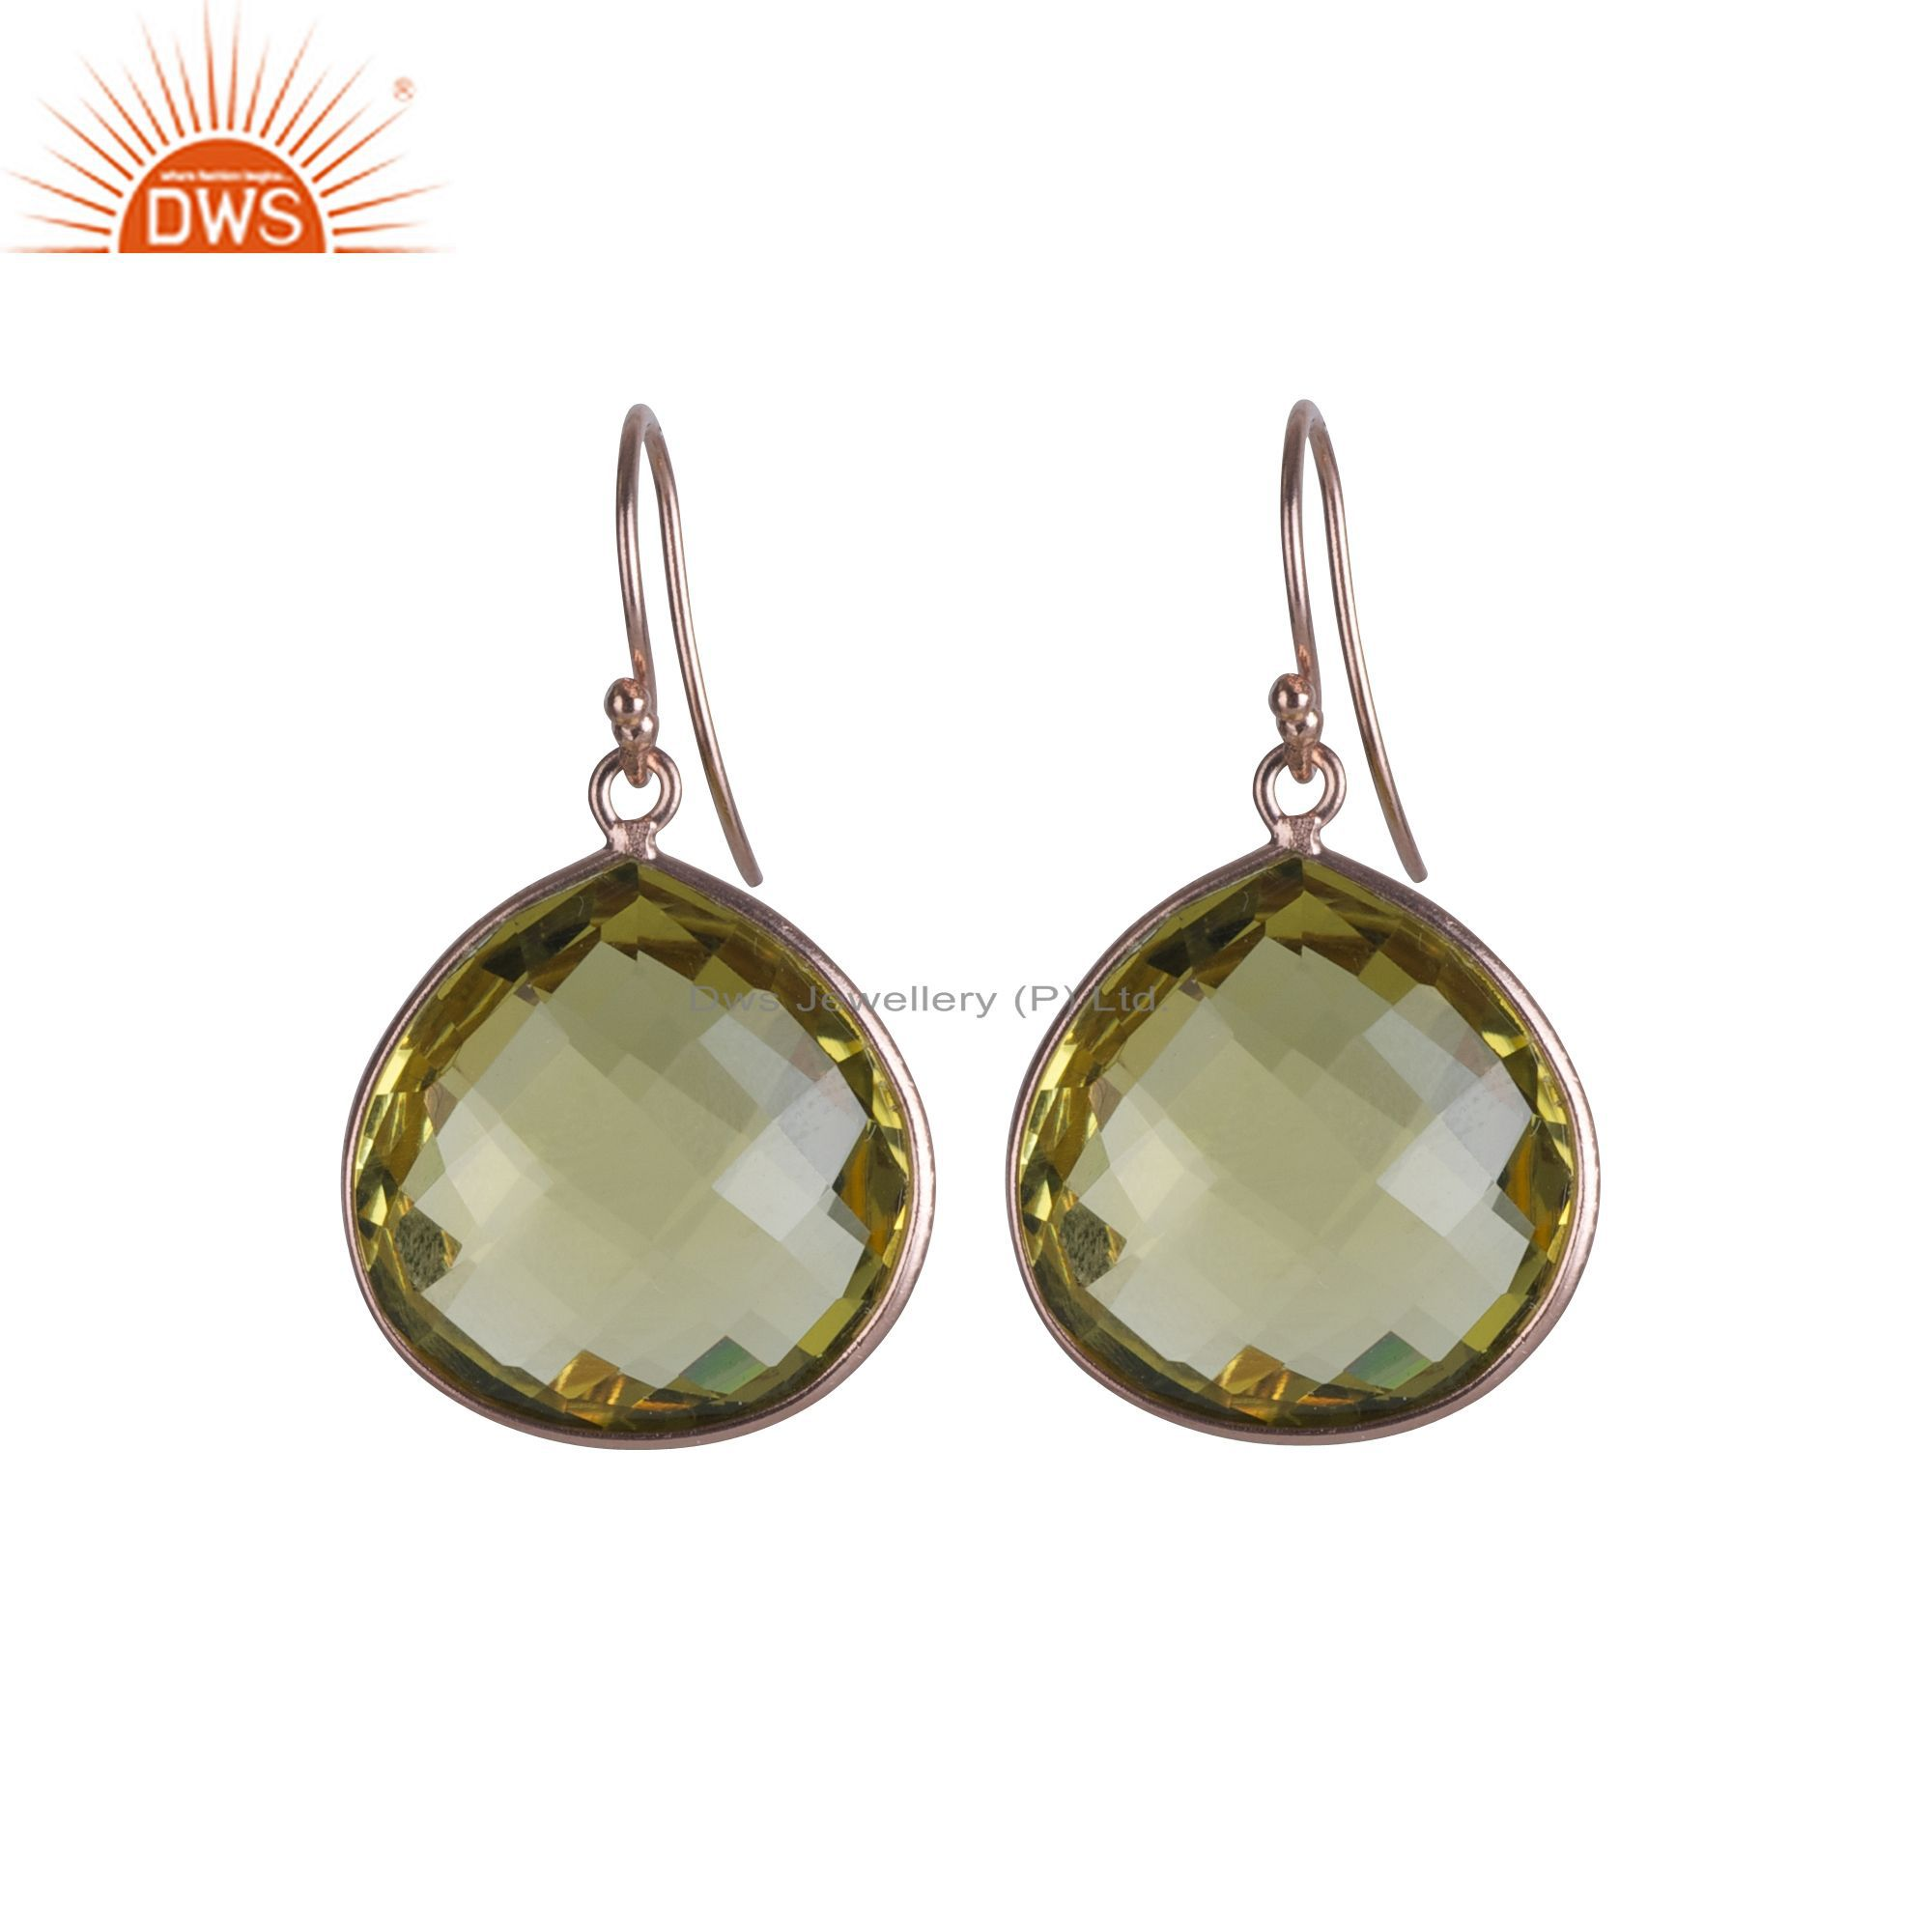 Handmade 925 Solid Sterling Silver Lemon Topaz Bezel Set Drop Earrings